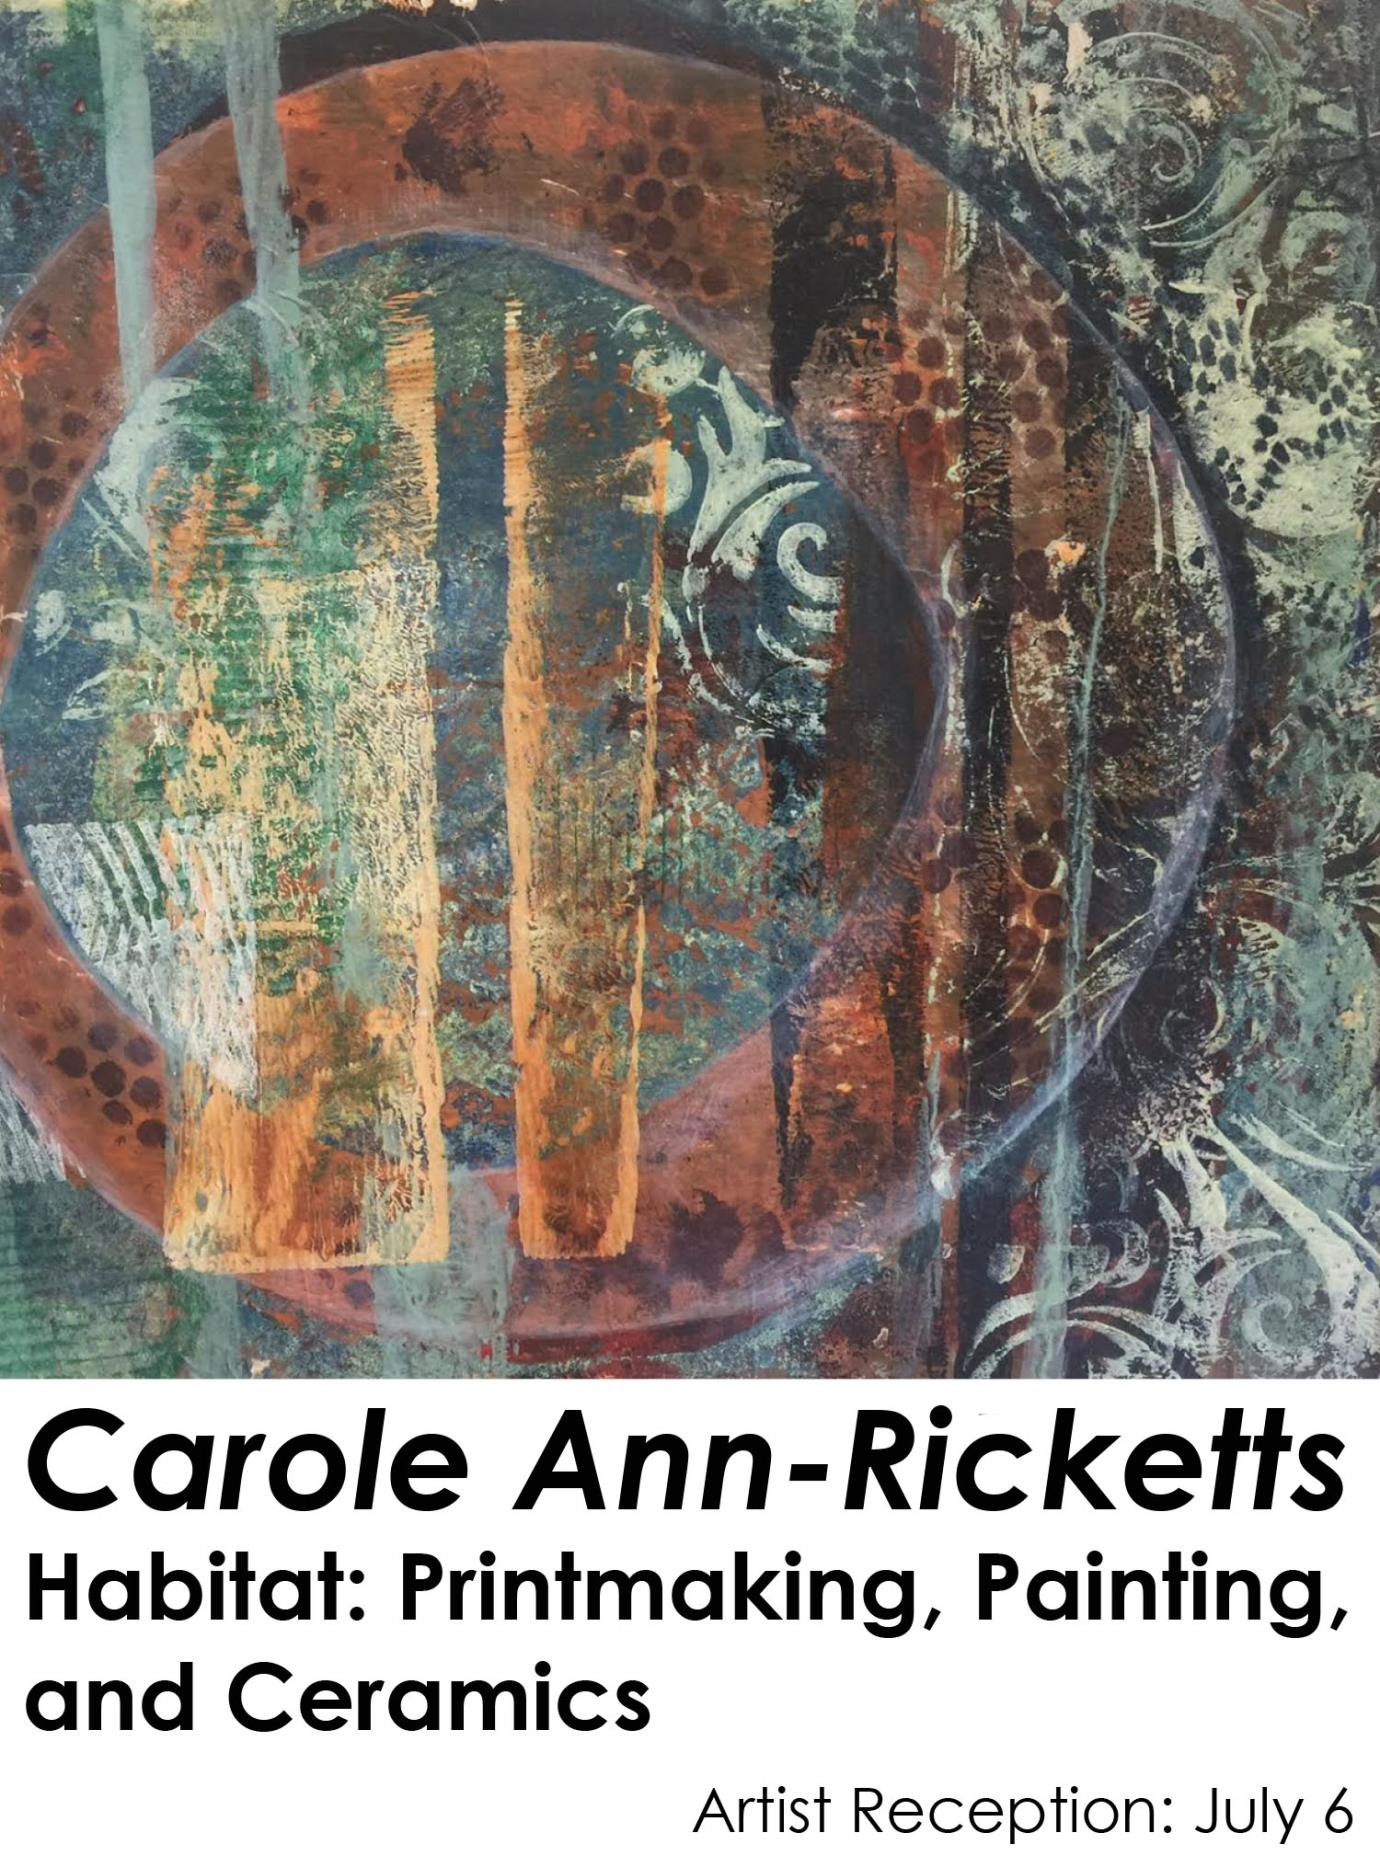 Abstract mixed media painting with a green background, a large red circle outlined with two navy blue lines, and orange lines going through the circle; Carole Ann Ricketts Habitat: Printmaking, Painting, and Ceramics; Artist reception July 6th